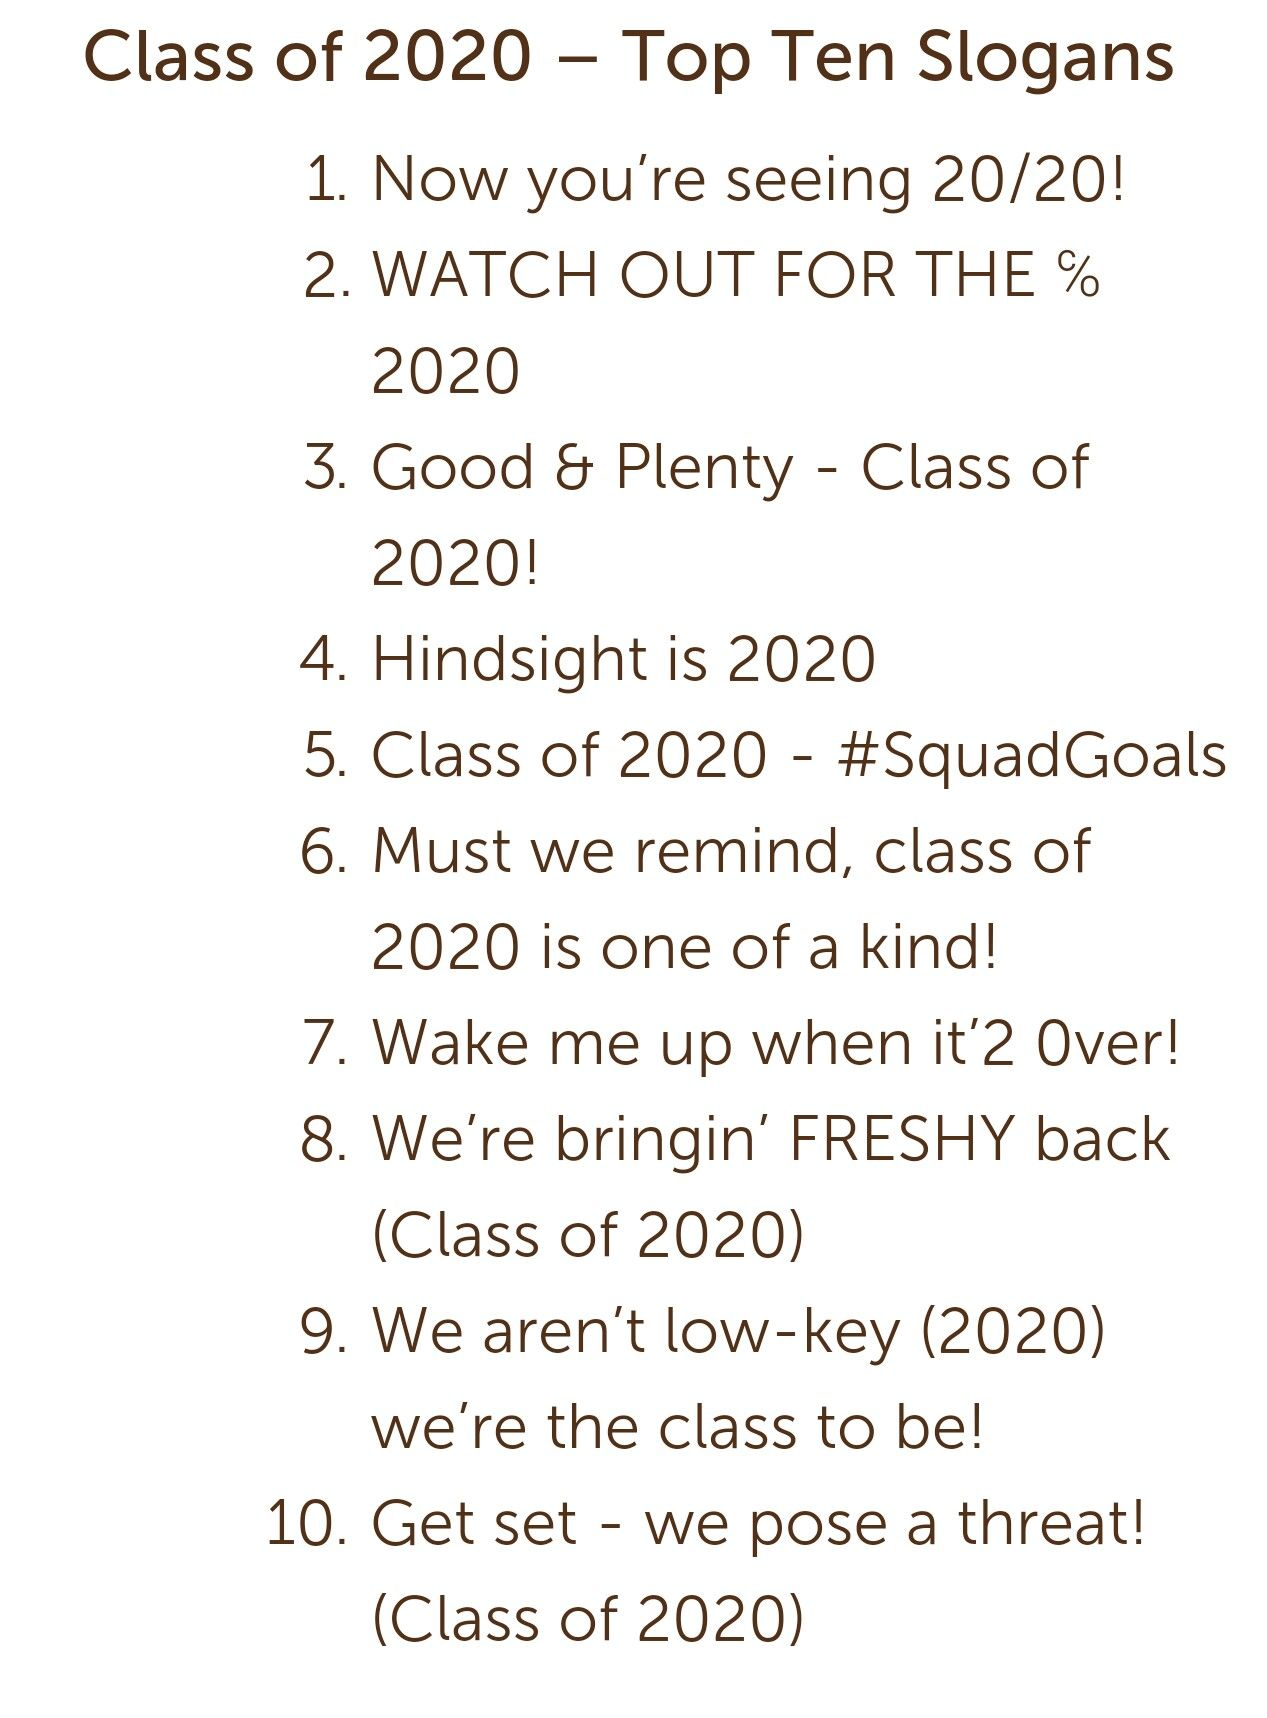 class of 2020 sayings graduation ideas sayings class of 2020 sayings